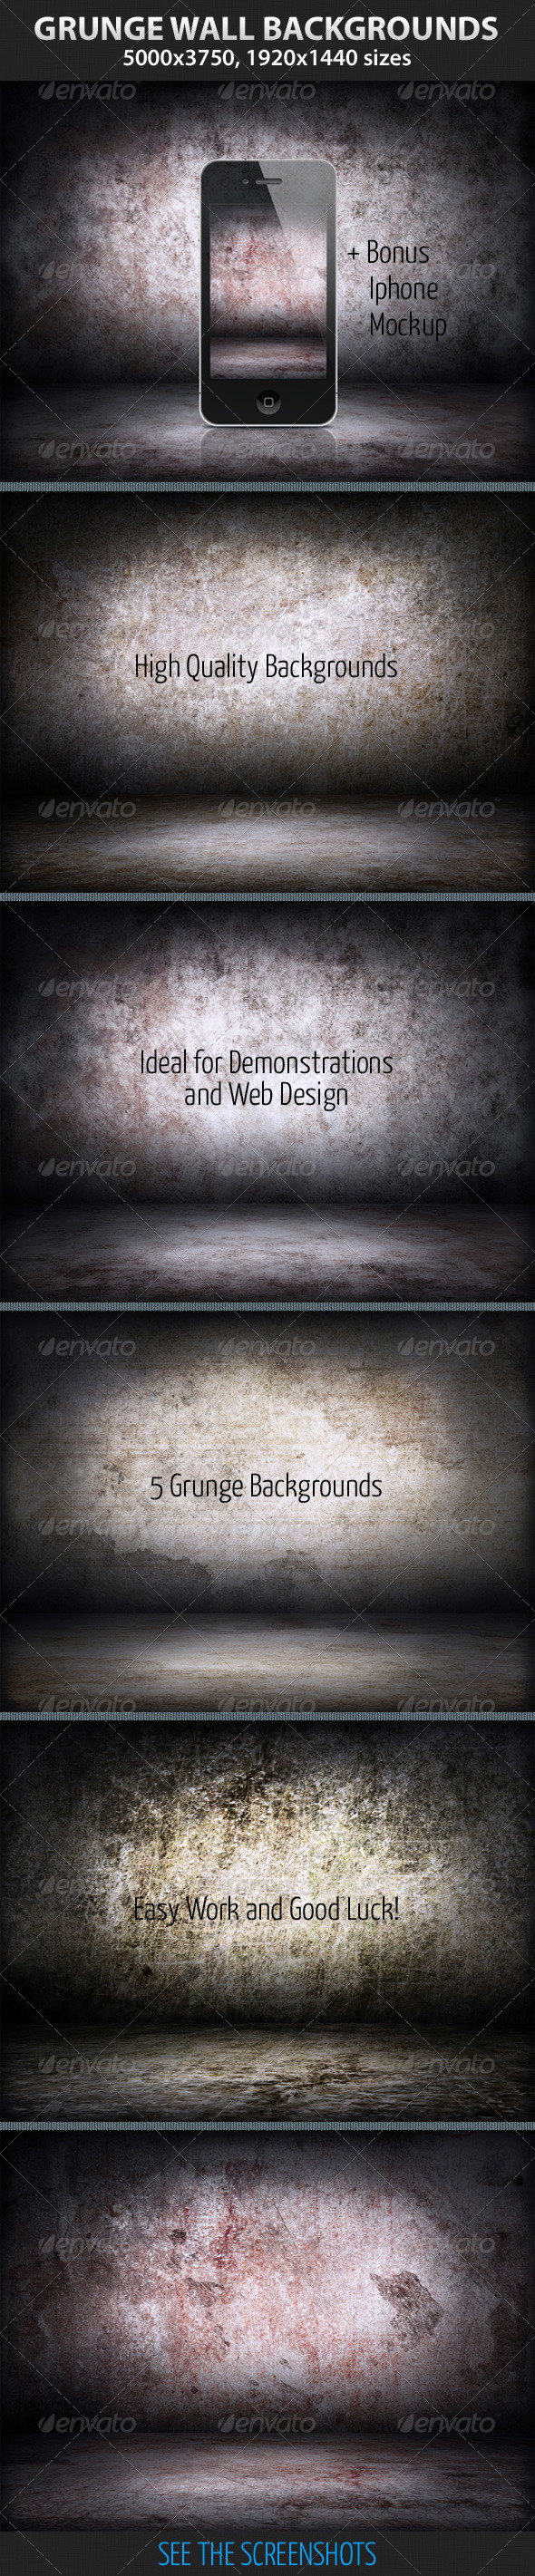 GraphicRiver 5 Grunge Wall Backgrounds 2973959